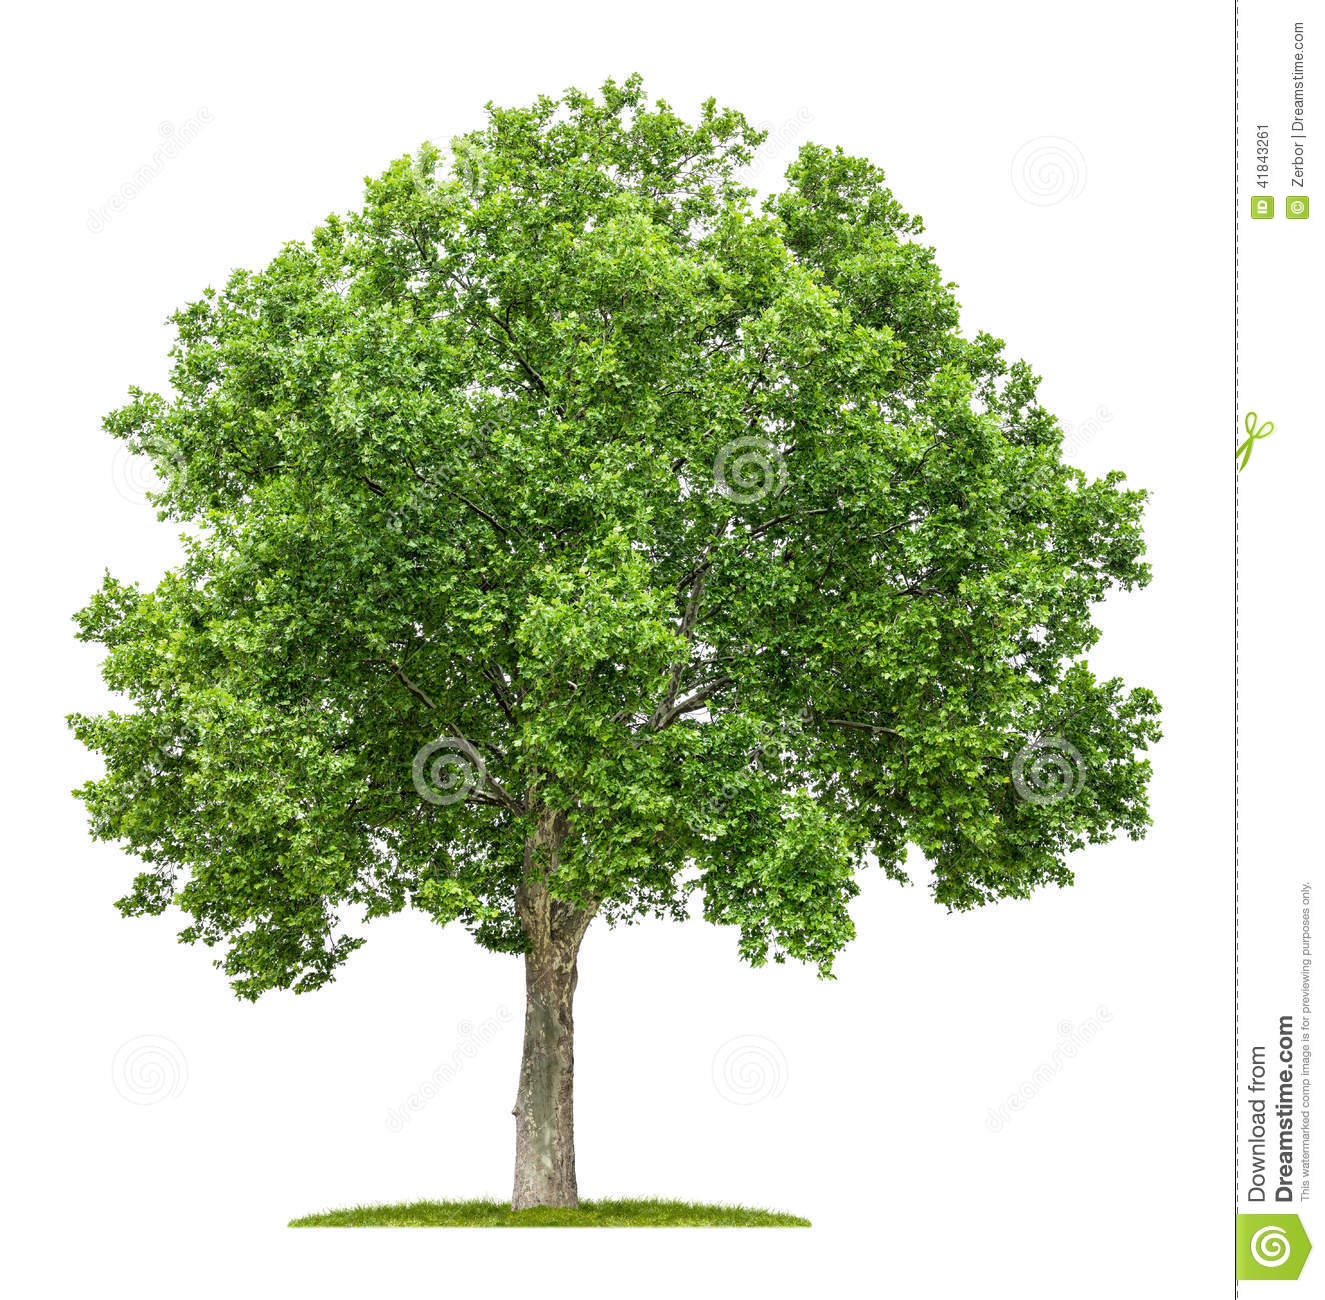 plane tree on a white background stock image image of isolated forest 41843261. Black Bedroom Furniture Sets. Home Design Ideas